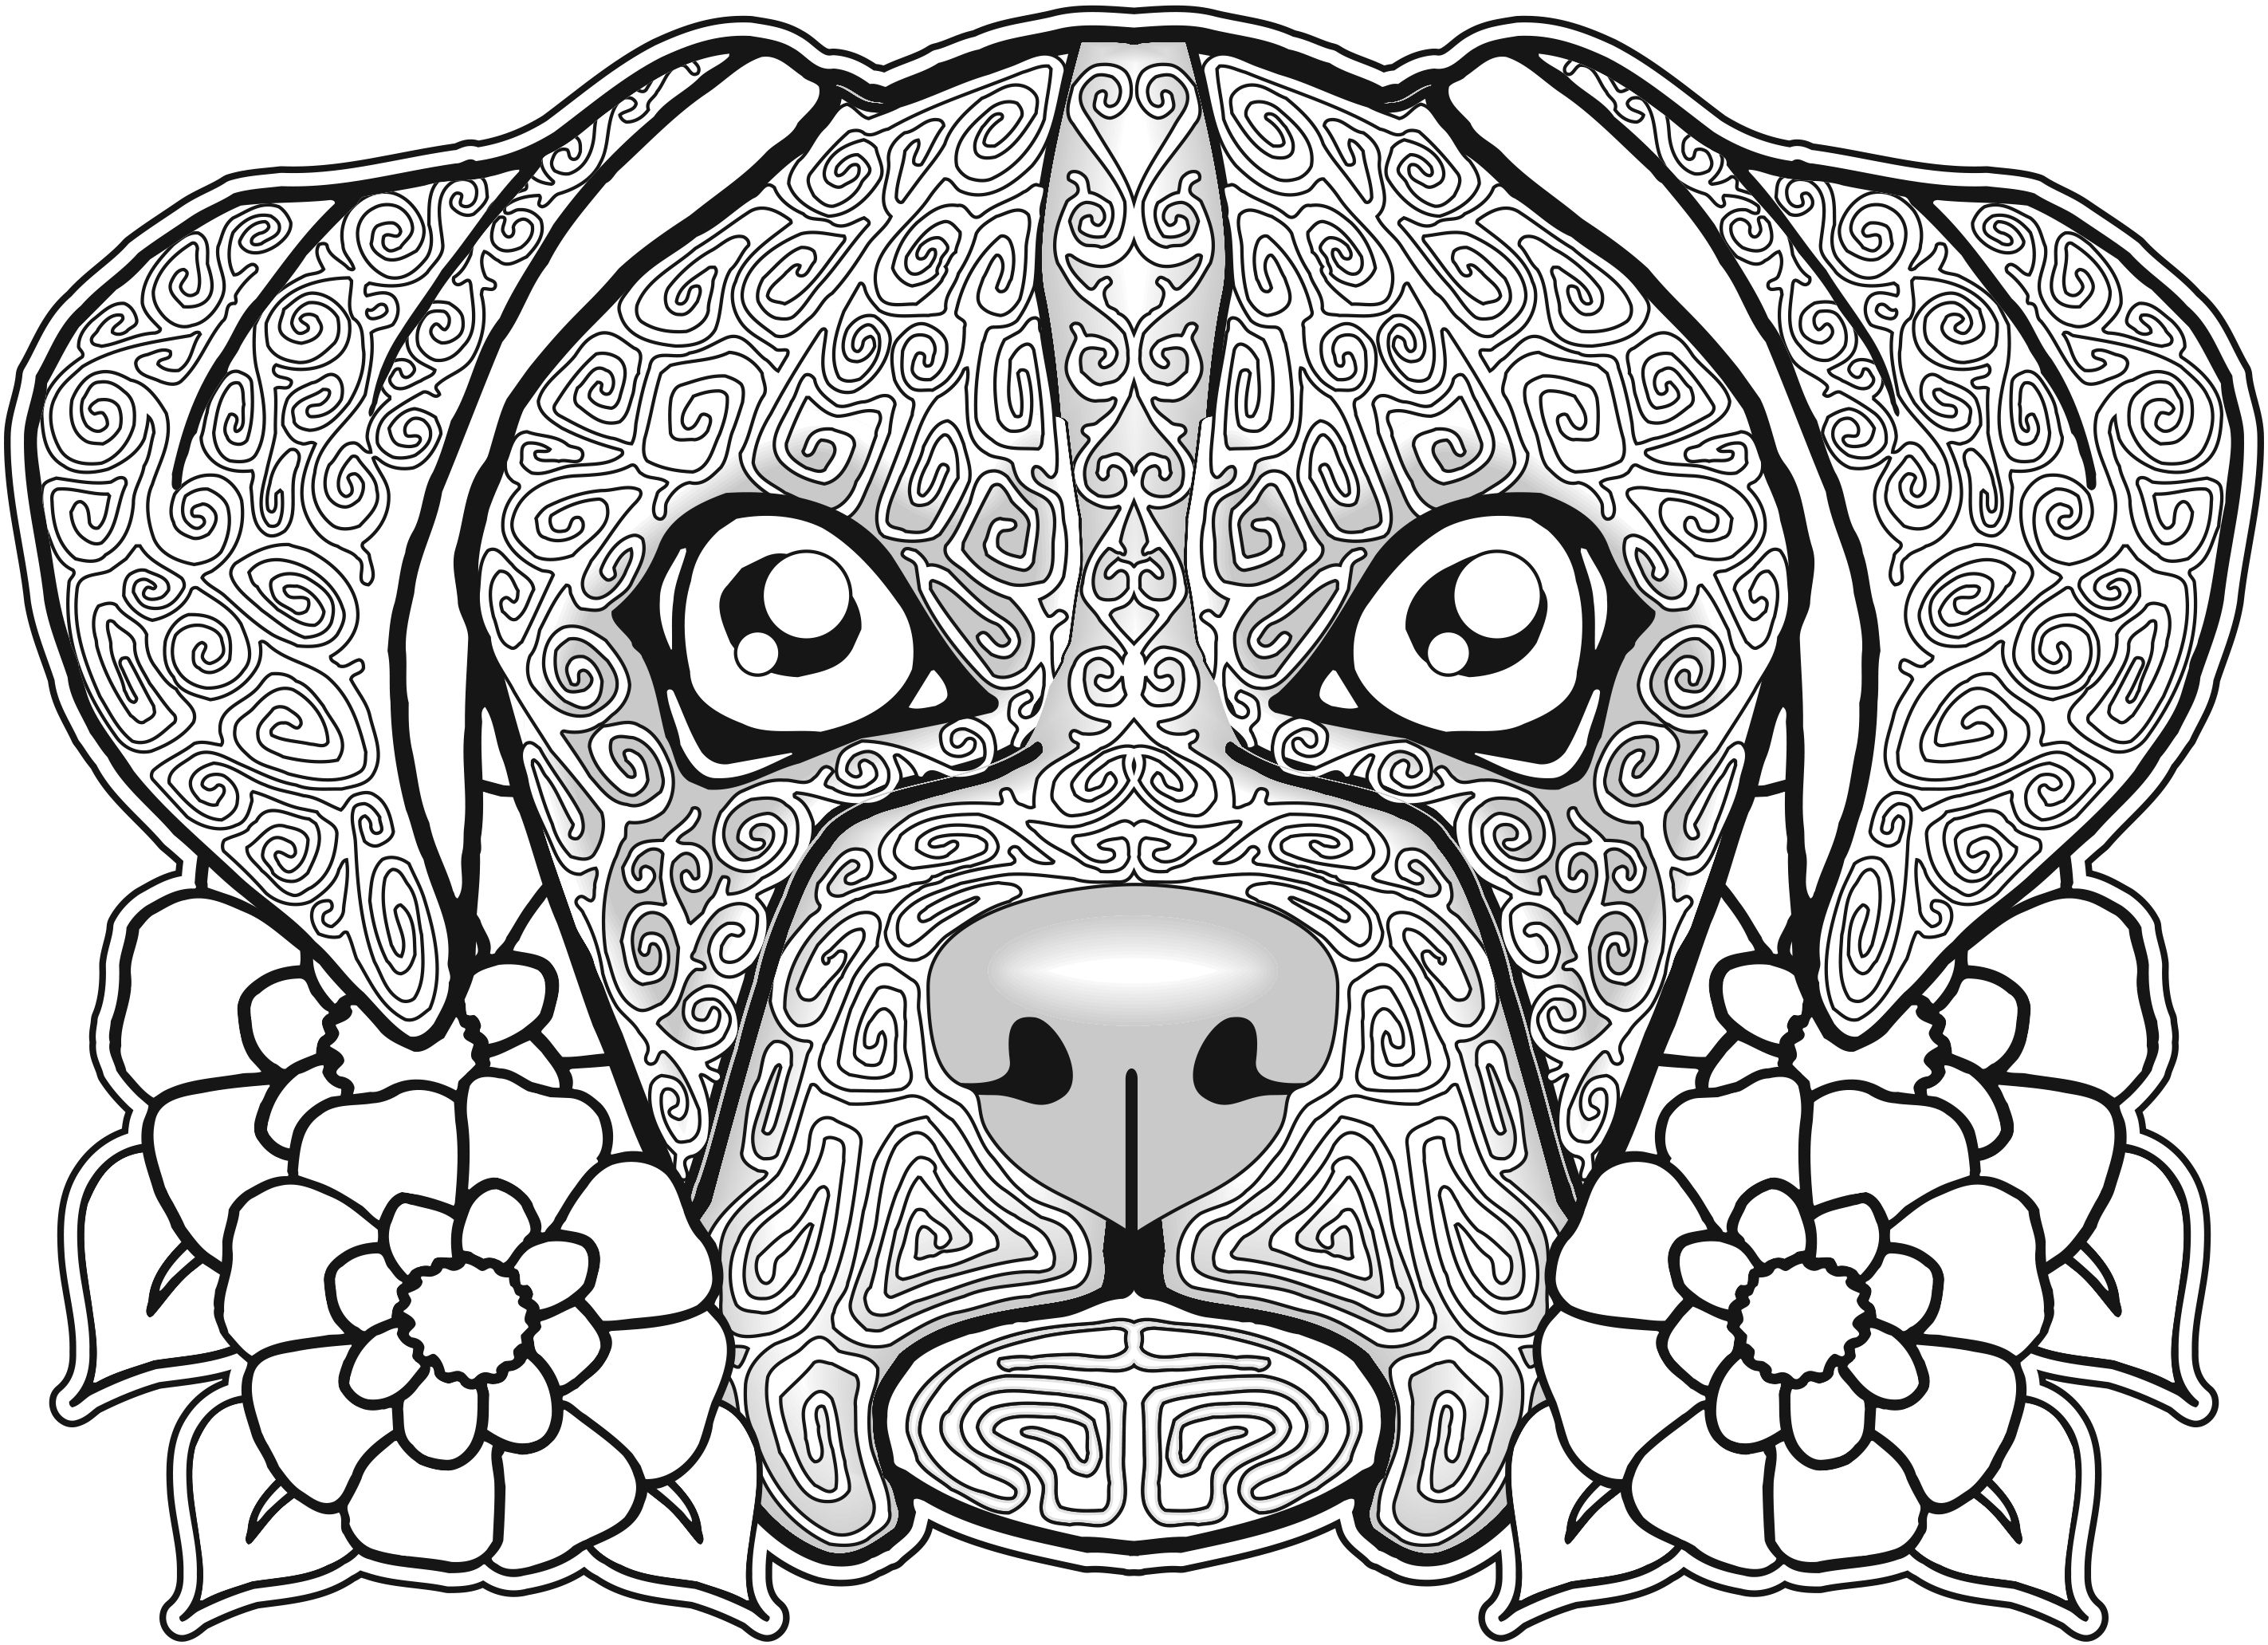 tundra animals coloring pages free printable pictures - HD 2845×2063